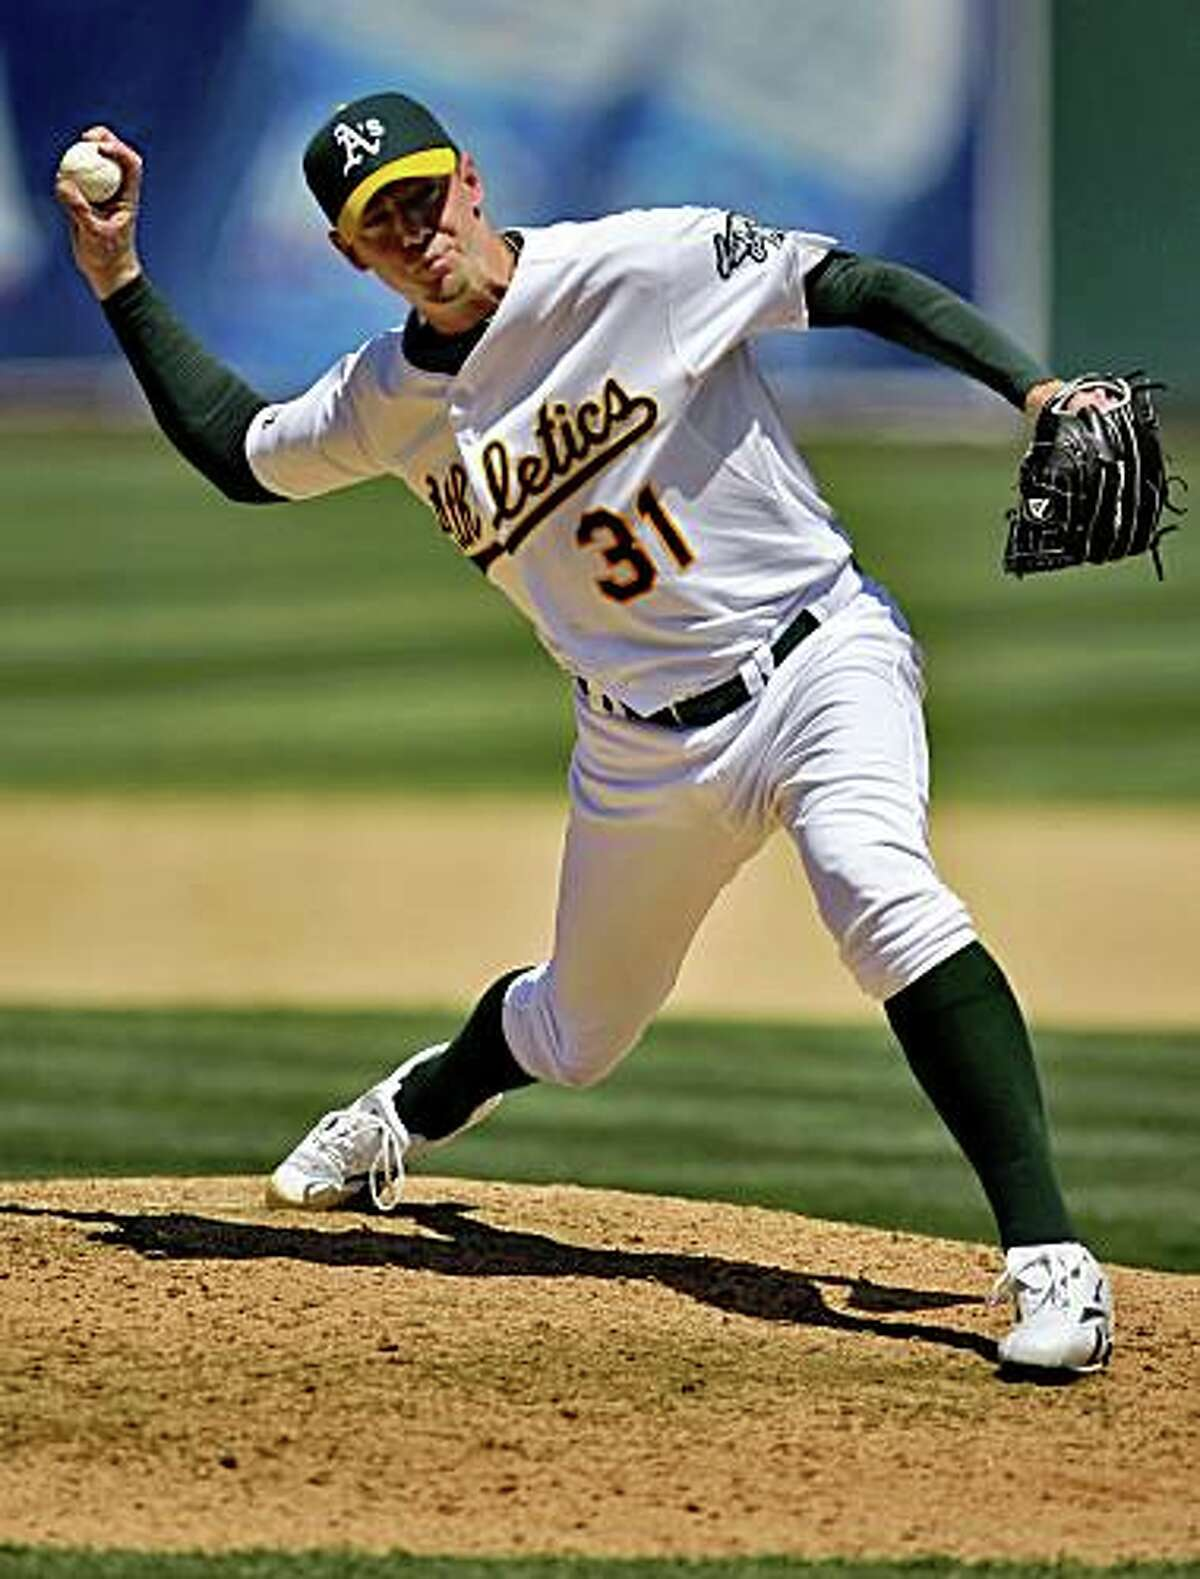 Brad Ziegler pitches in the end of the game for the Athletics. The Oakland Athletics played the Minnesota Twins at the Oakland-Alameda County Coliseum in Oakland, Calif., on Thursday, June 11, 2009, in their final game of the series. The Athletics won the game 4-3.